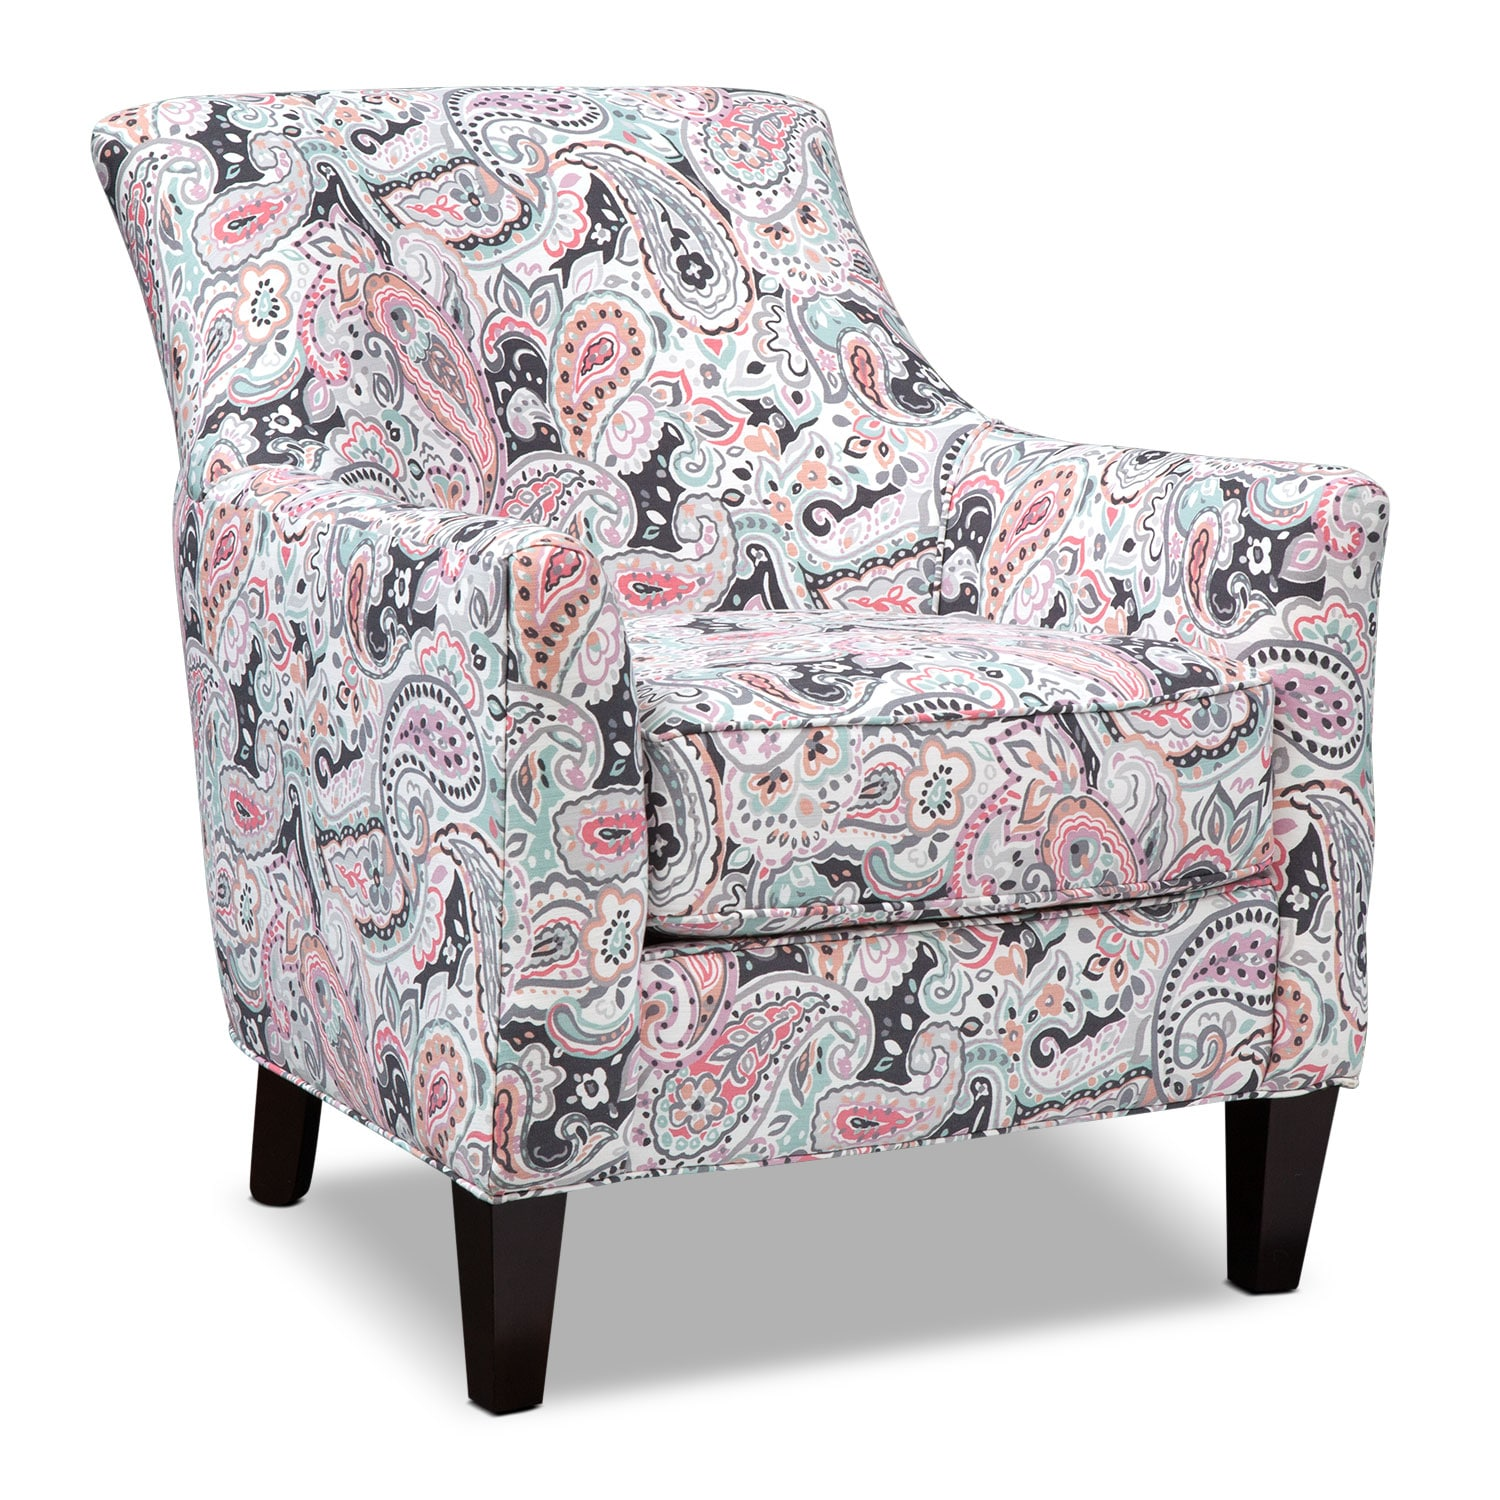 Rachel Esparanza Accent Chair - Granite